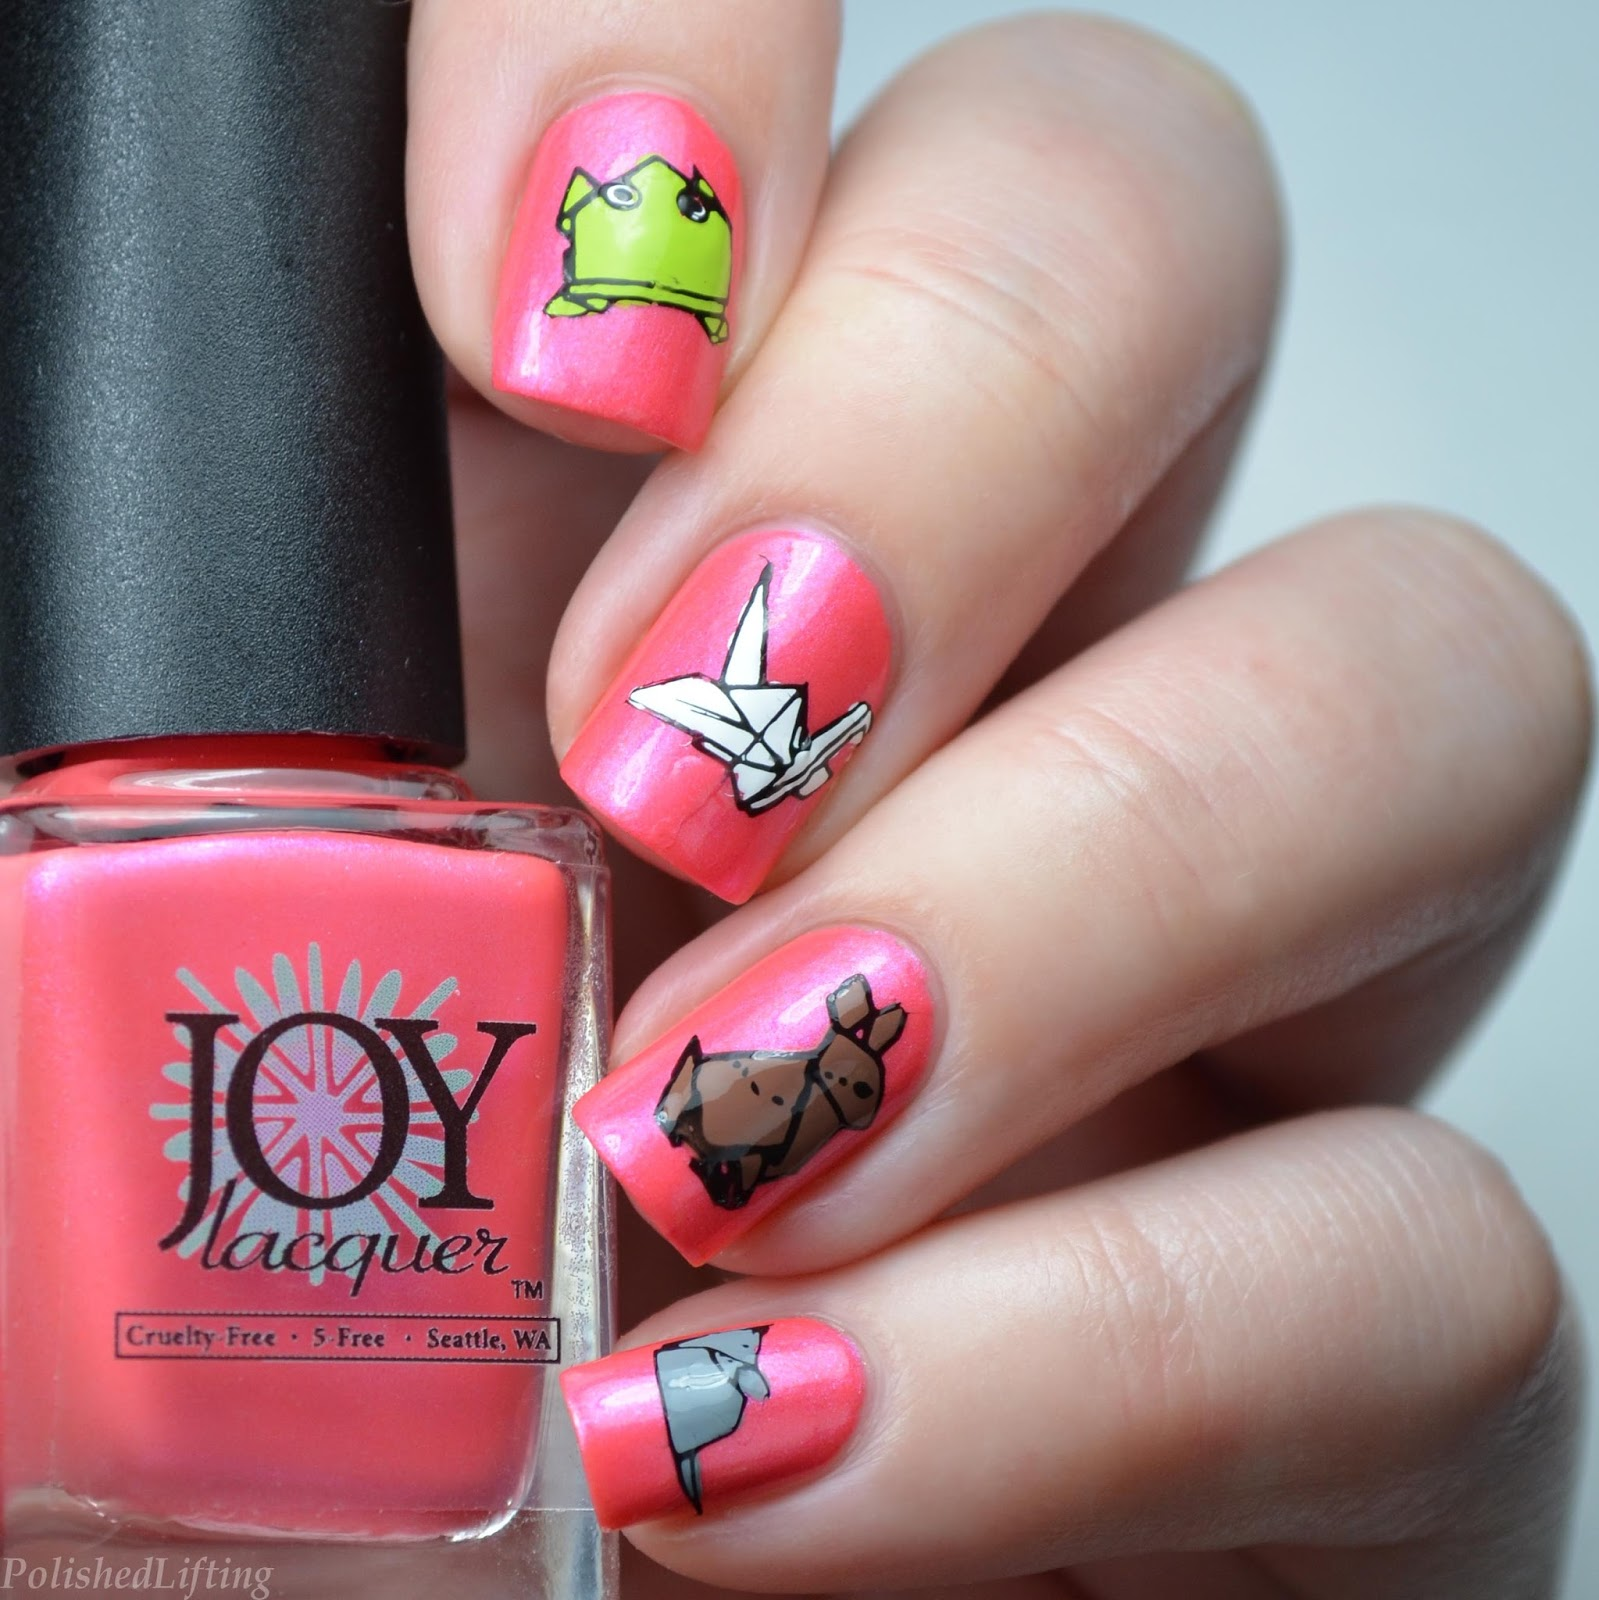 Polished Lifting: Origami Paper Animals featuring Joy Lacquer